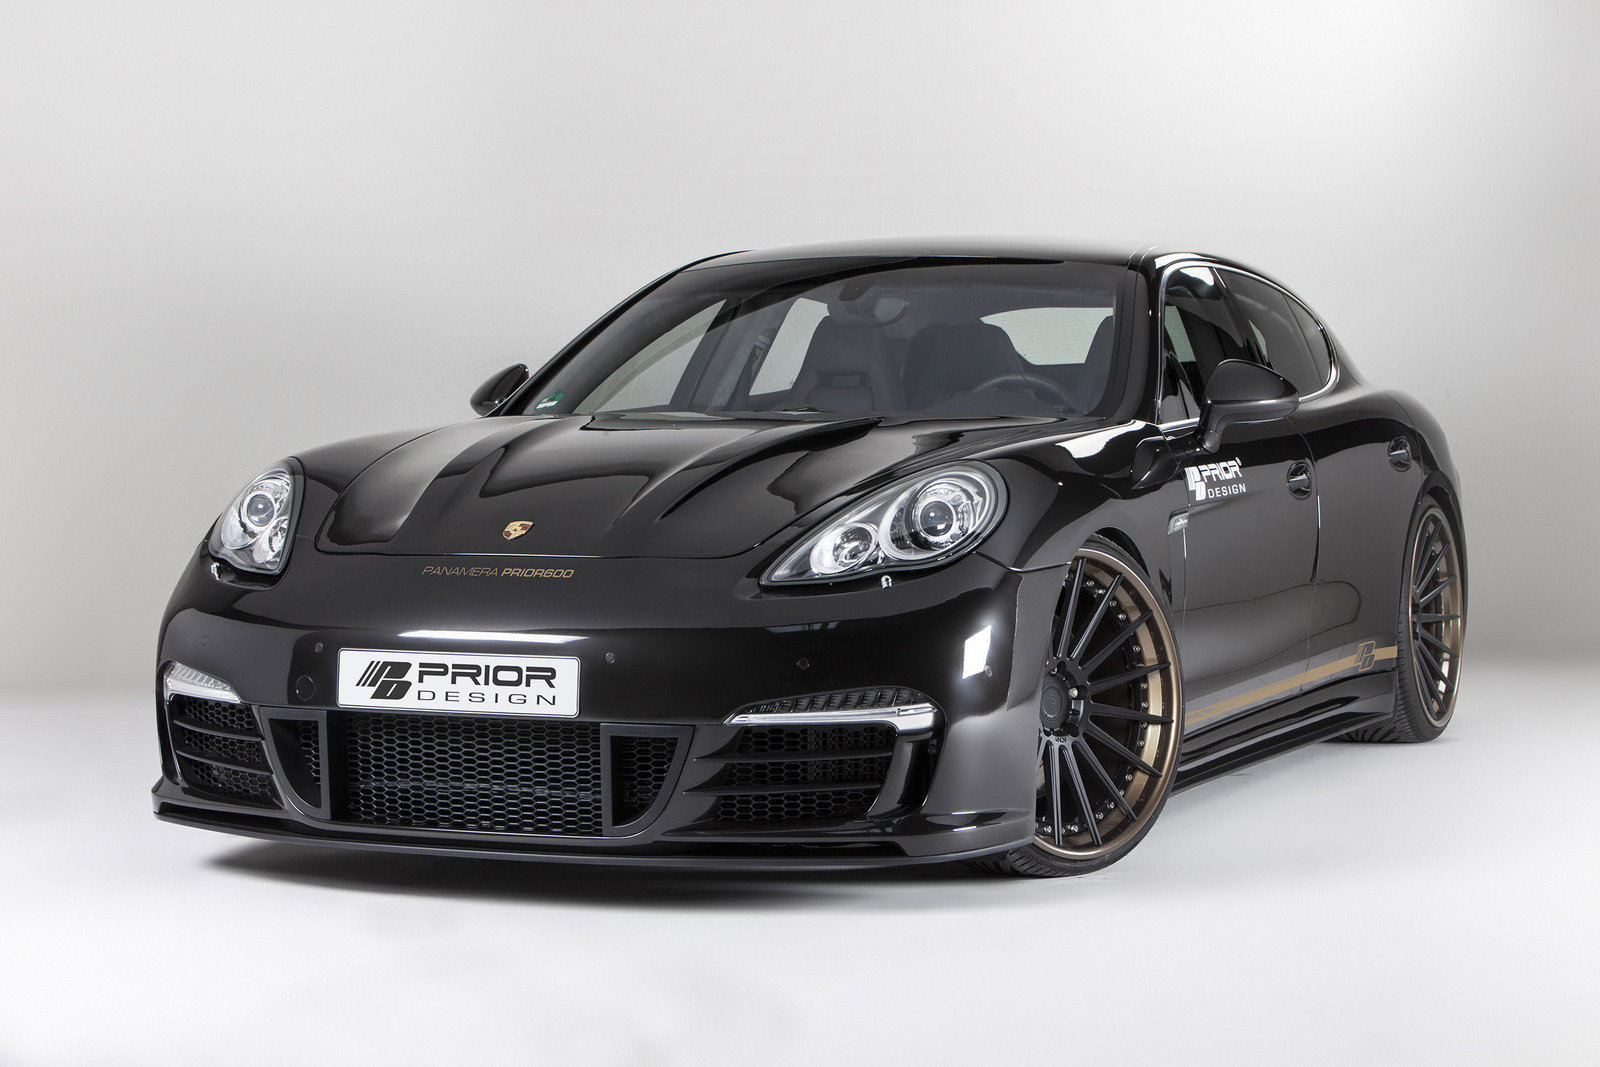 2013 porsche panamera prior600 by prior design review top speed. Black Bedroom Furniture Sets. Home Design Ideas